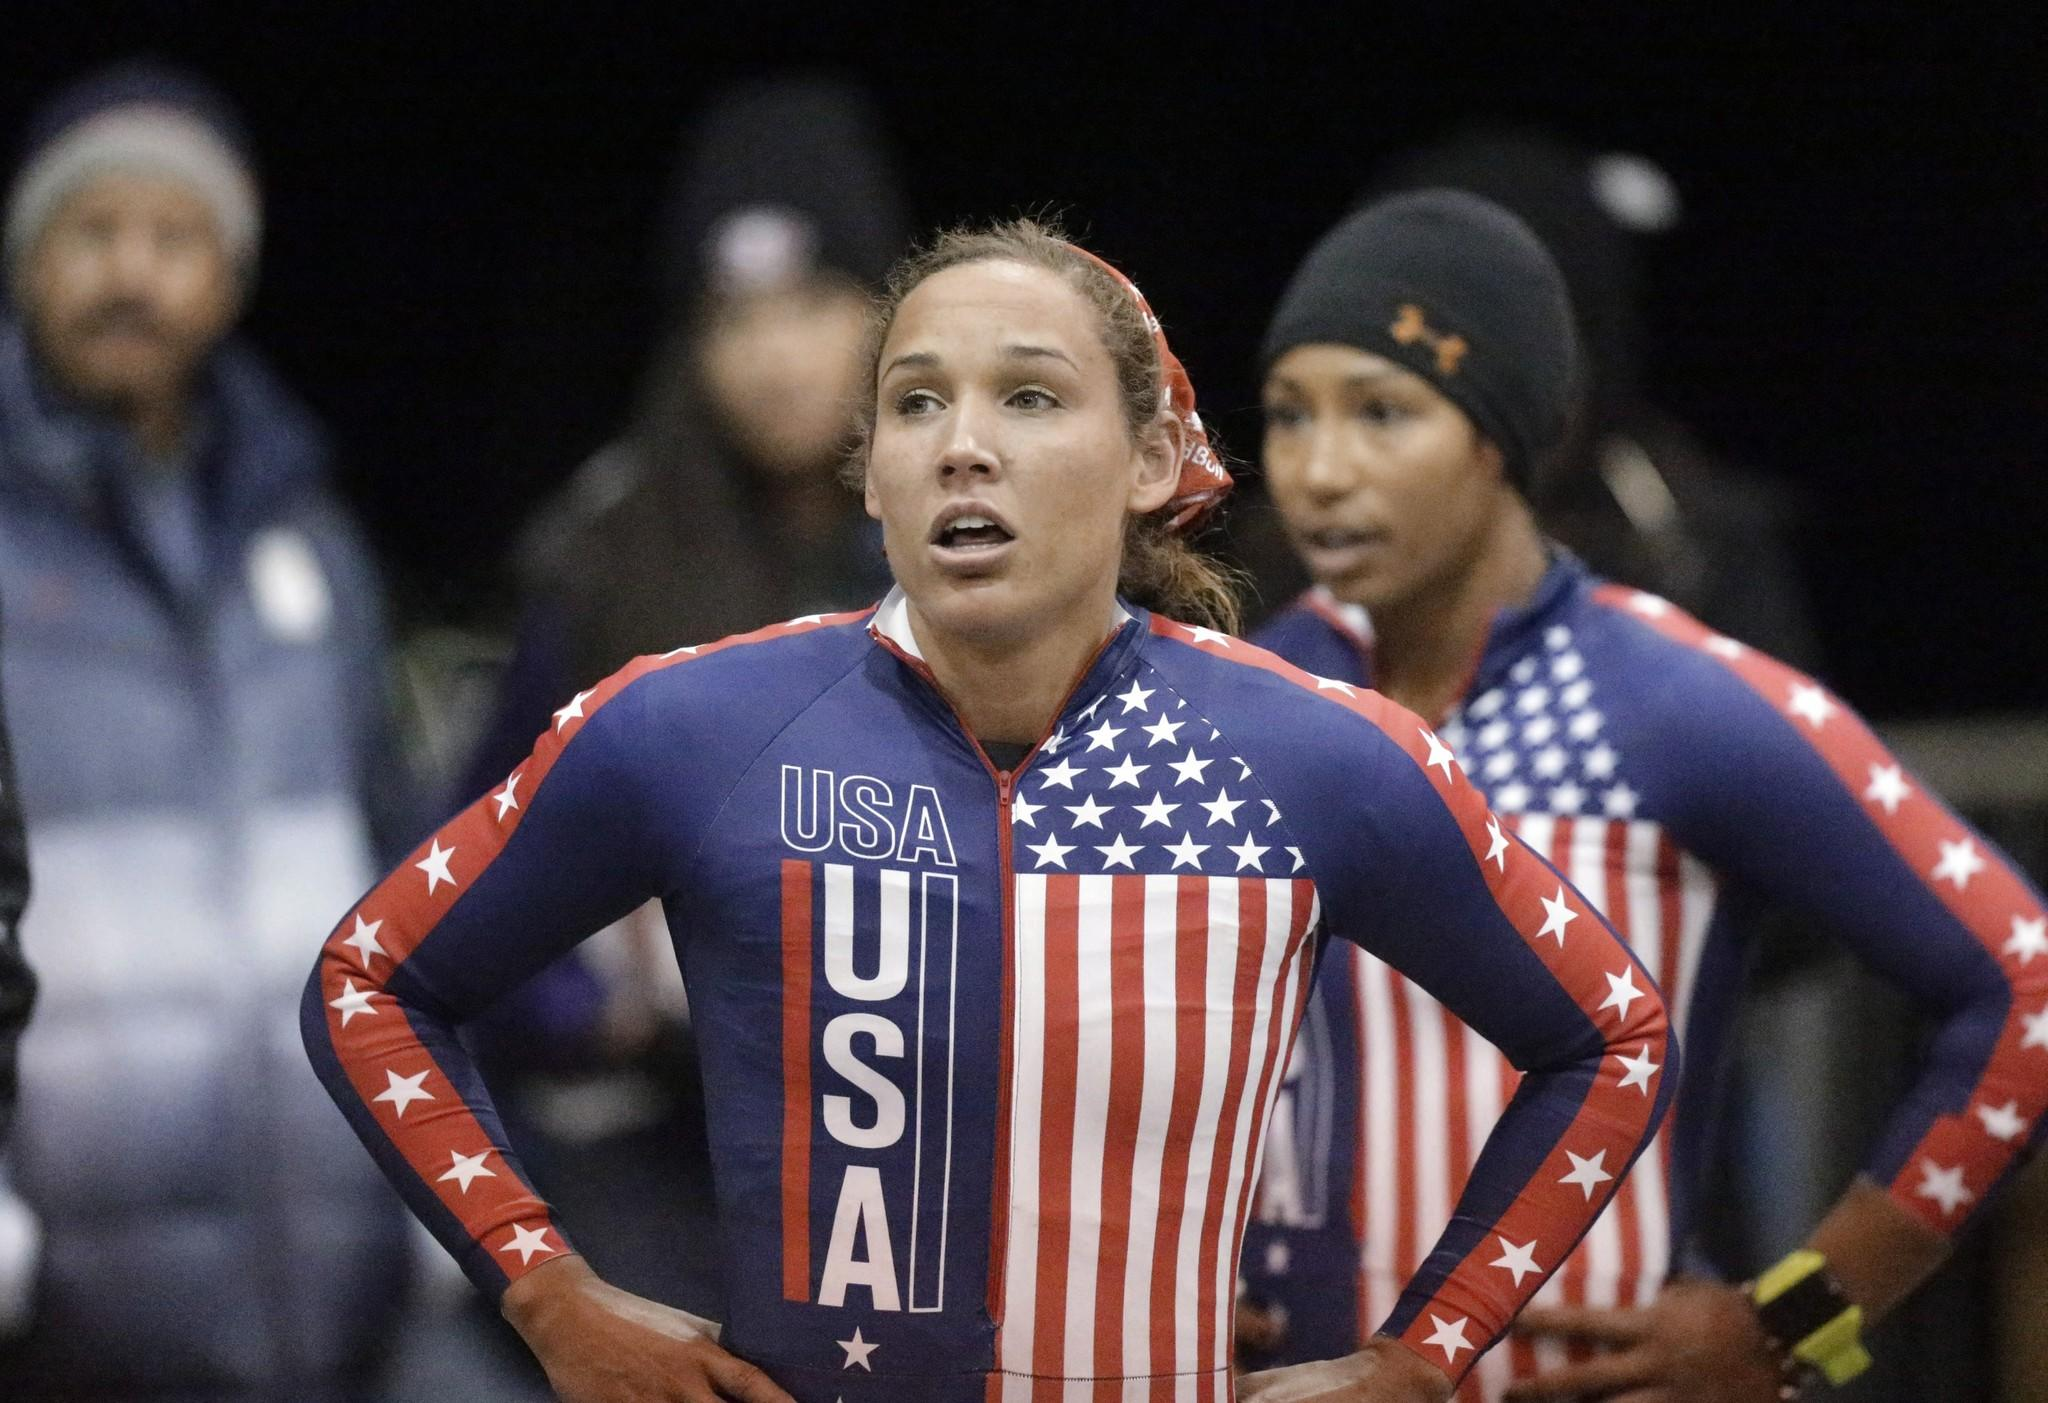 The U.S. Bobsled and Skeleton Federation named Lolo Jones women's bobsled team Sunday, a move some have suggested was due to Jones' popularity and not her production.